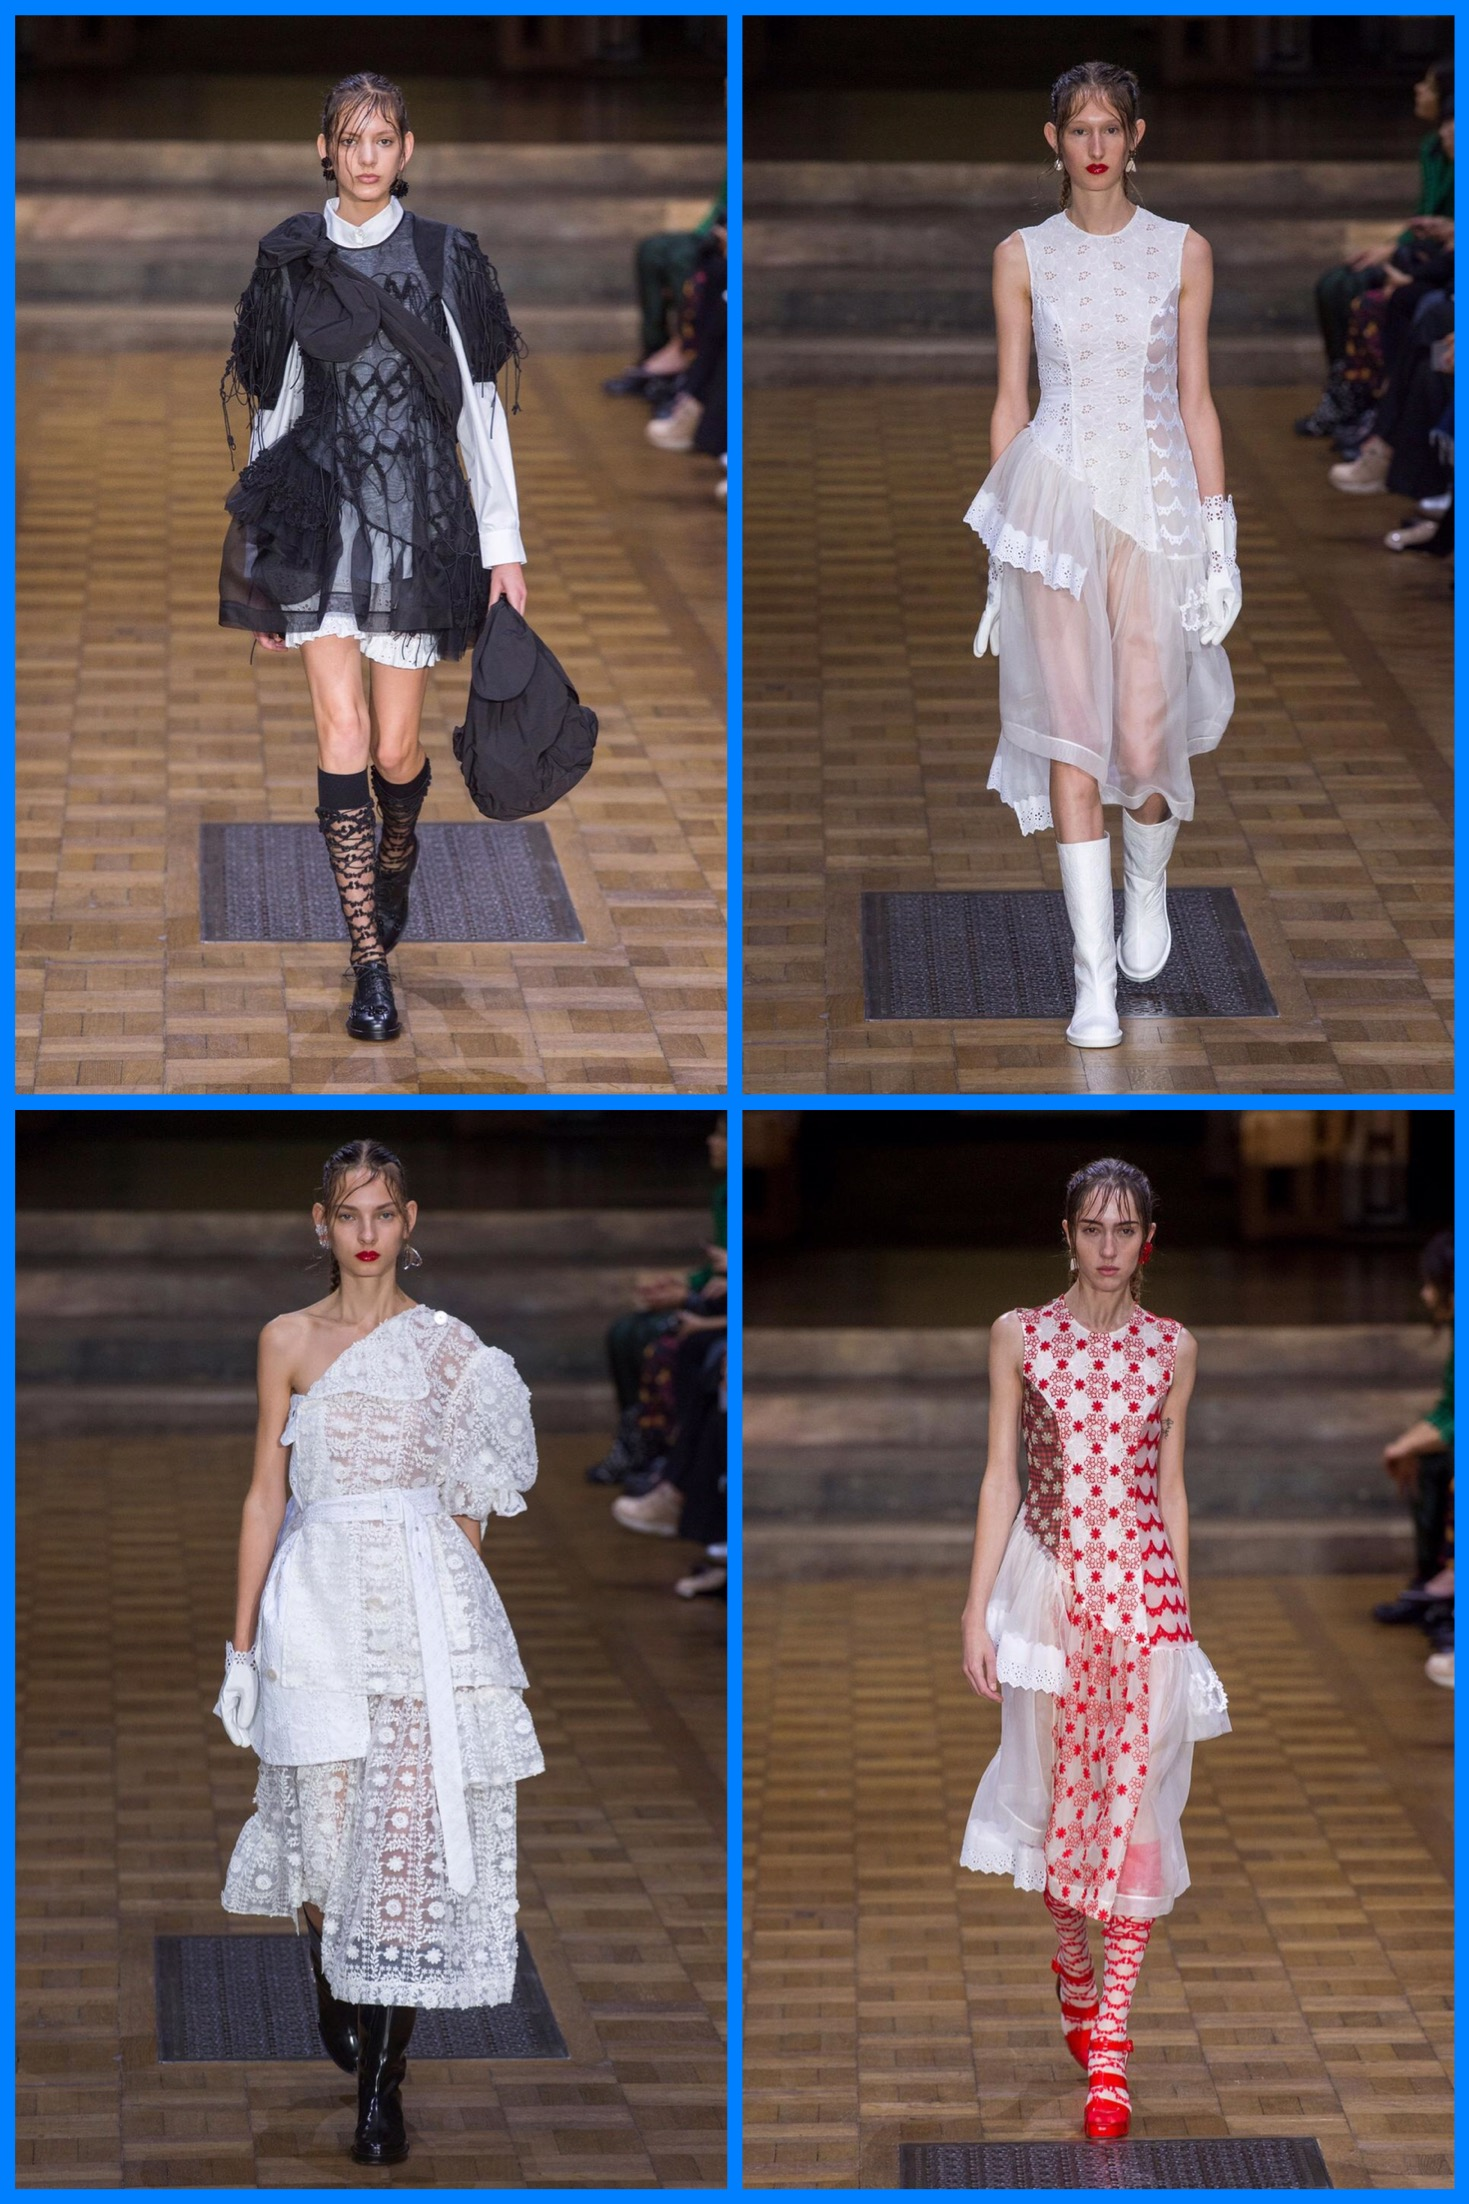 london-fashion-week-pret-a-porter-spring-summer-2017-style-simone-rocha